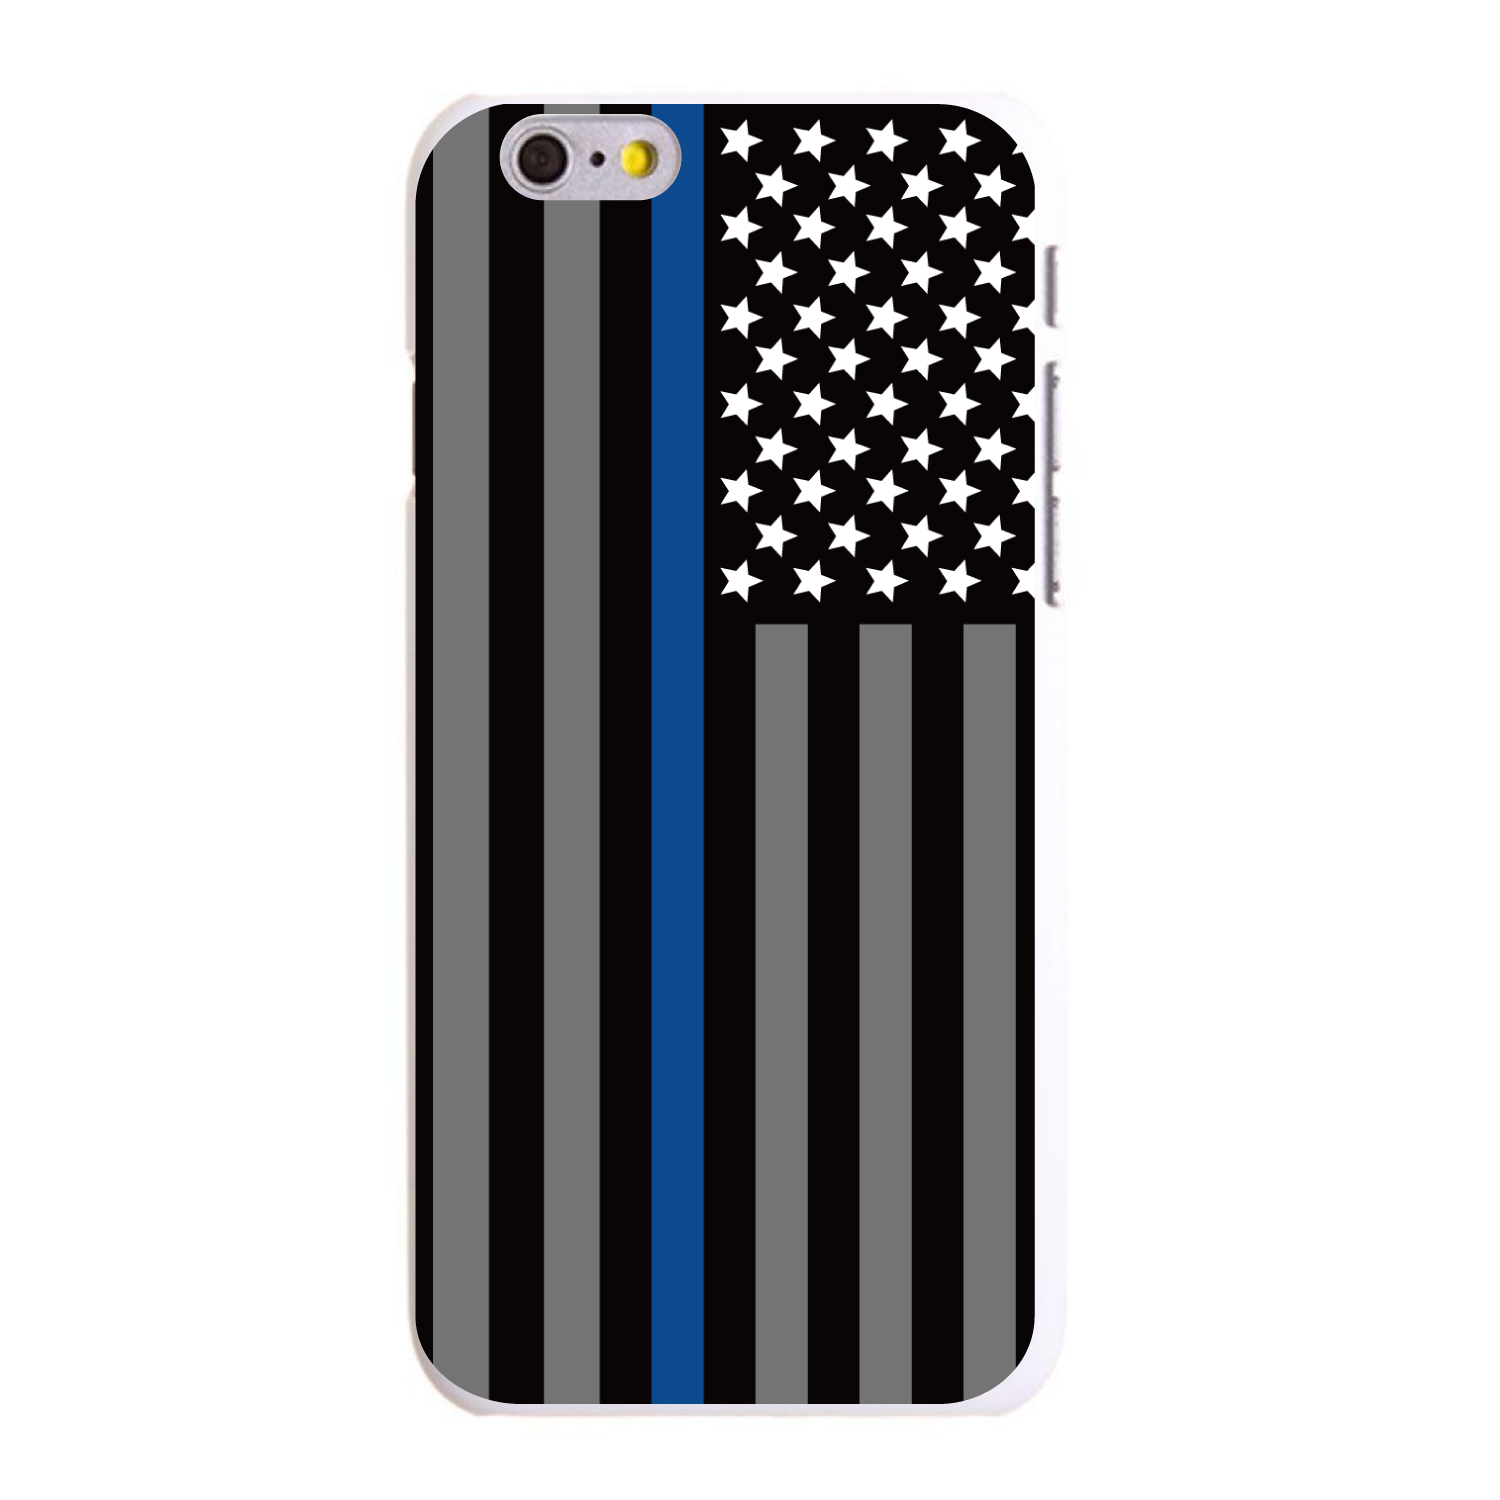 "CUSTOM White Hard Plastic Snap-On Case for Apple iPhone 6 / 6S (4.7"" Screen) - Thin Blue Line US Flag Law Enforcement"